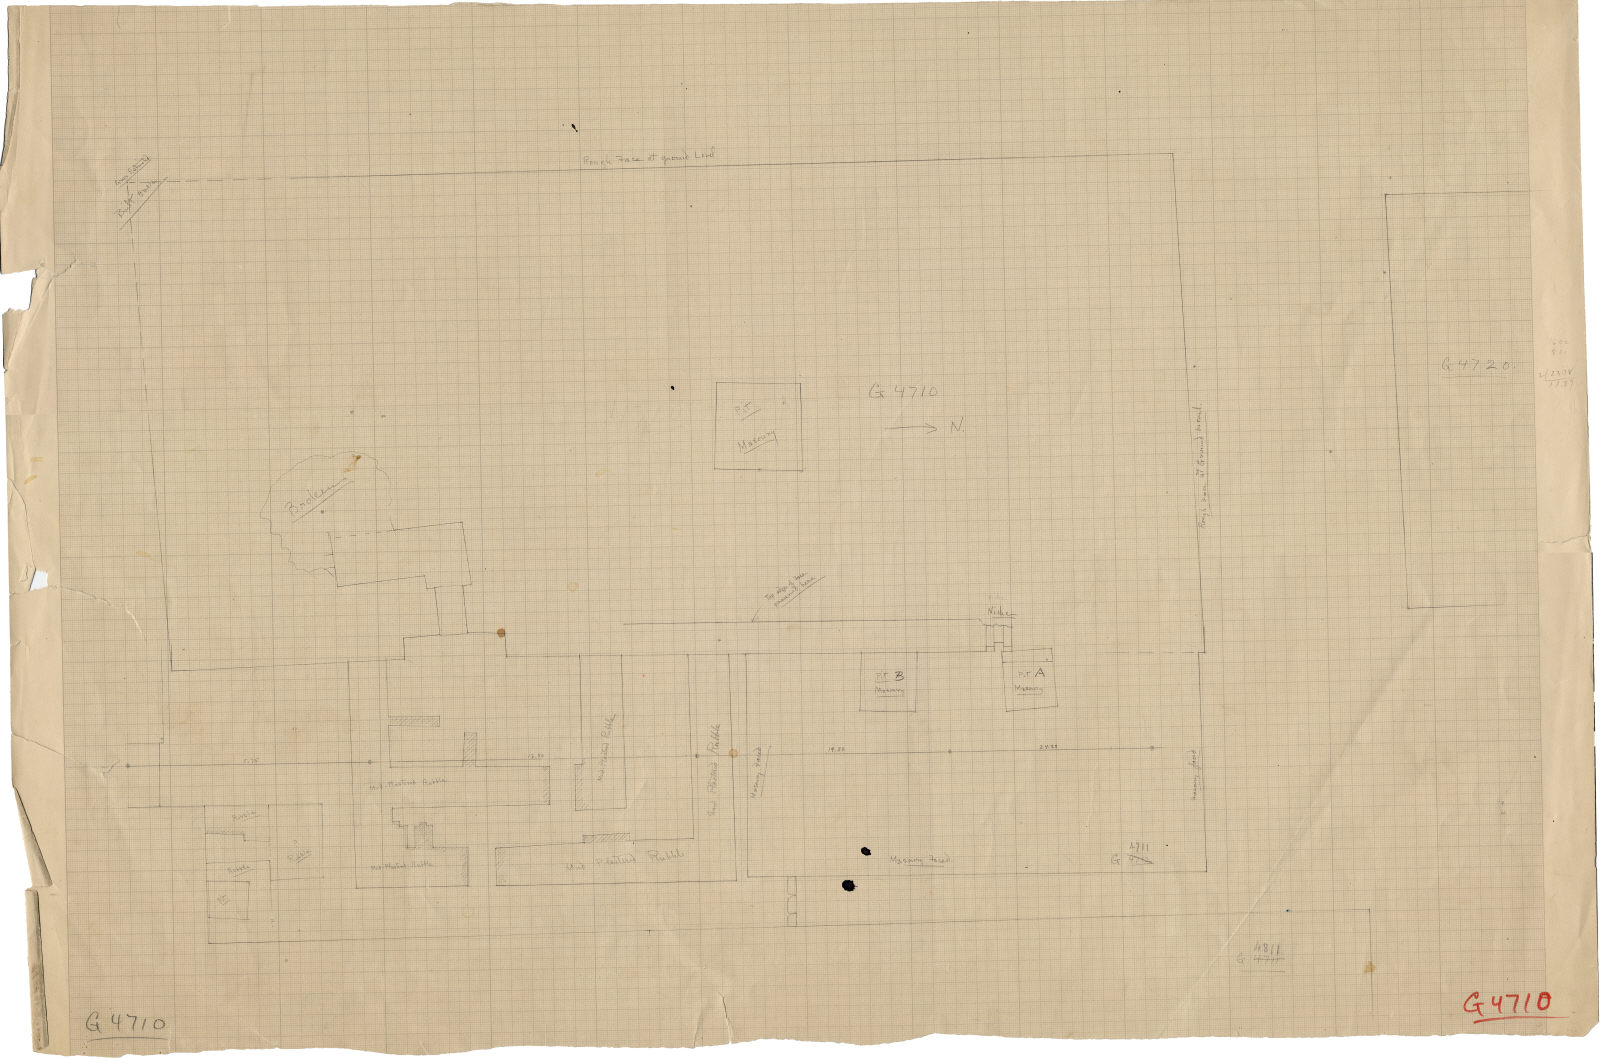 Maps and plans: Plan of G 4710, with positions of G 4711, G 4713, G 4720, G 4811+4812